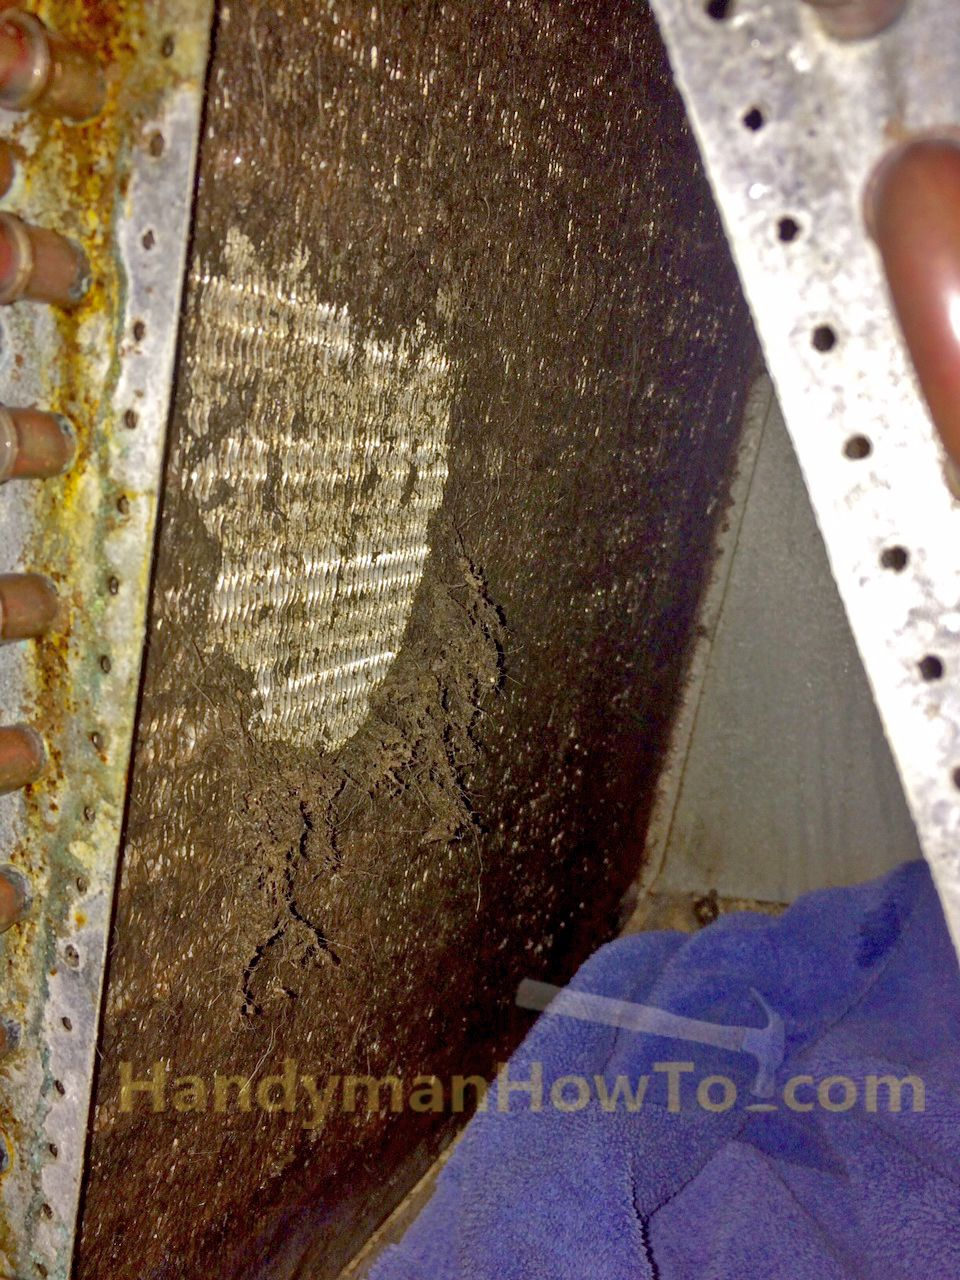 Ac Evaporator Coils Interior Clogged With Dirt And Mold How To Clean Inside Of